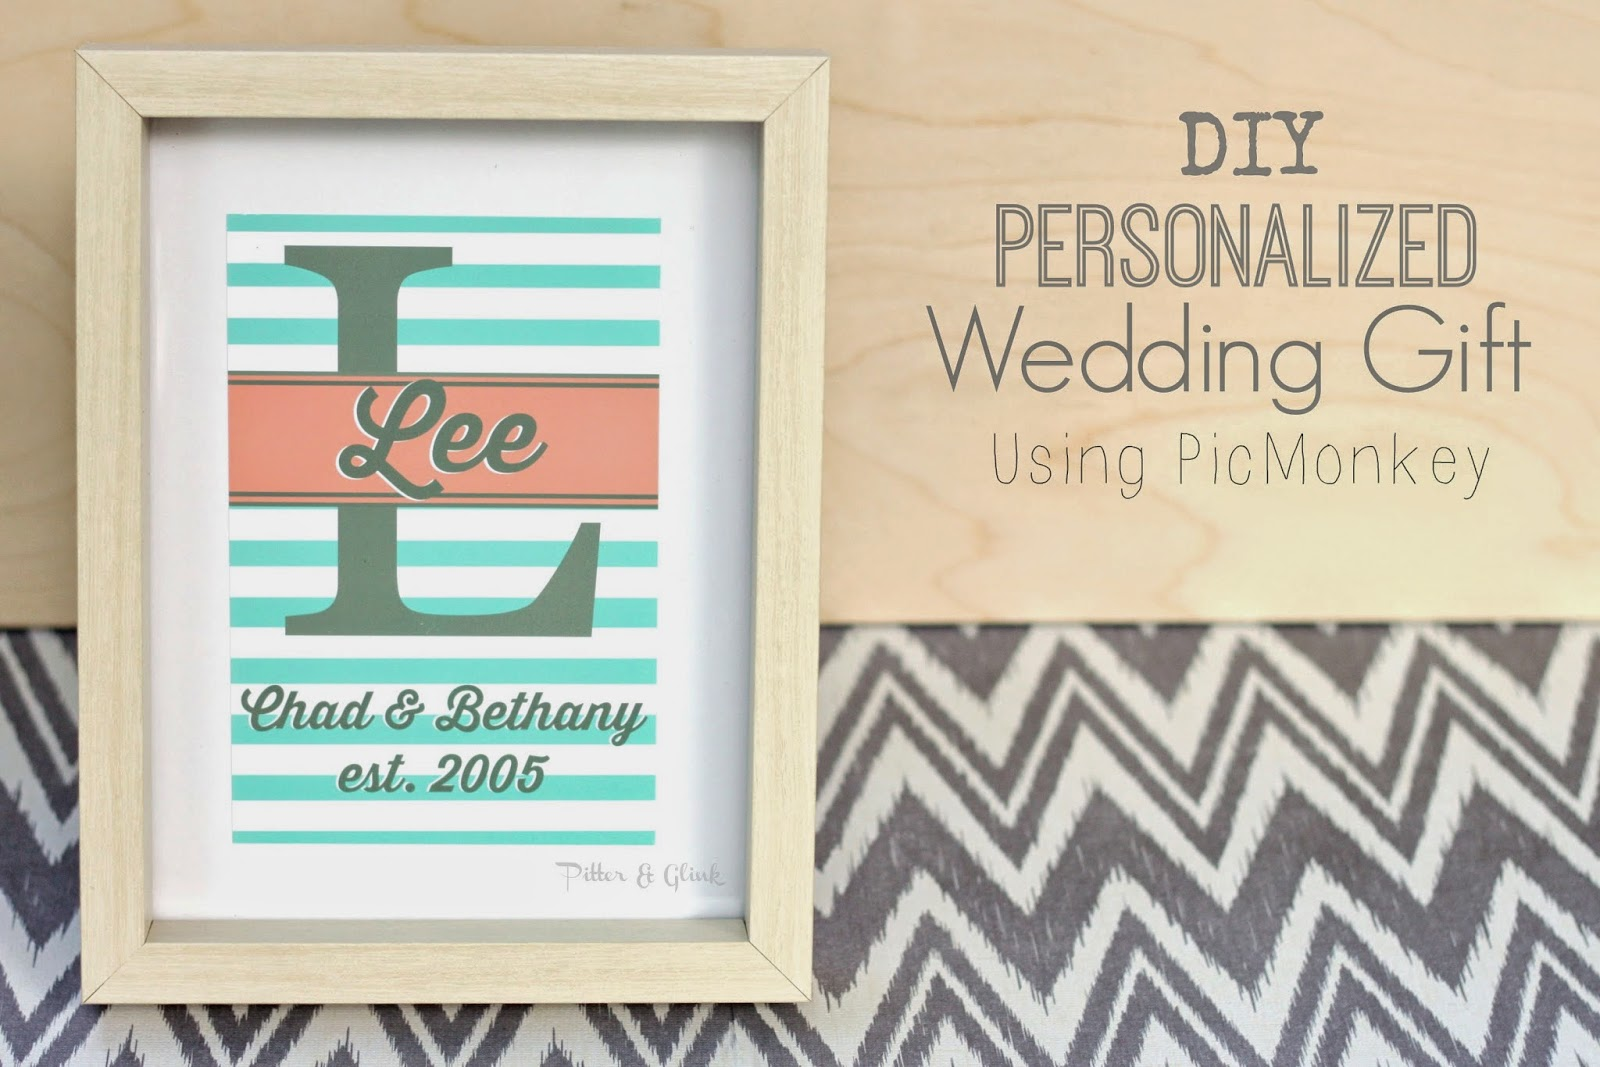 Personalised Wedding Gift Cheap : Create an inexpensive, personalized wedding gift using PicMonkey and ...